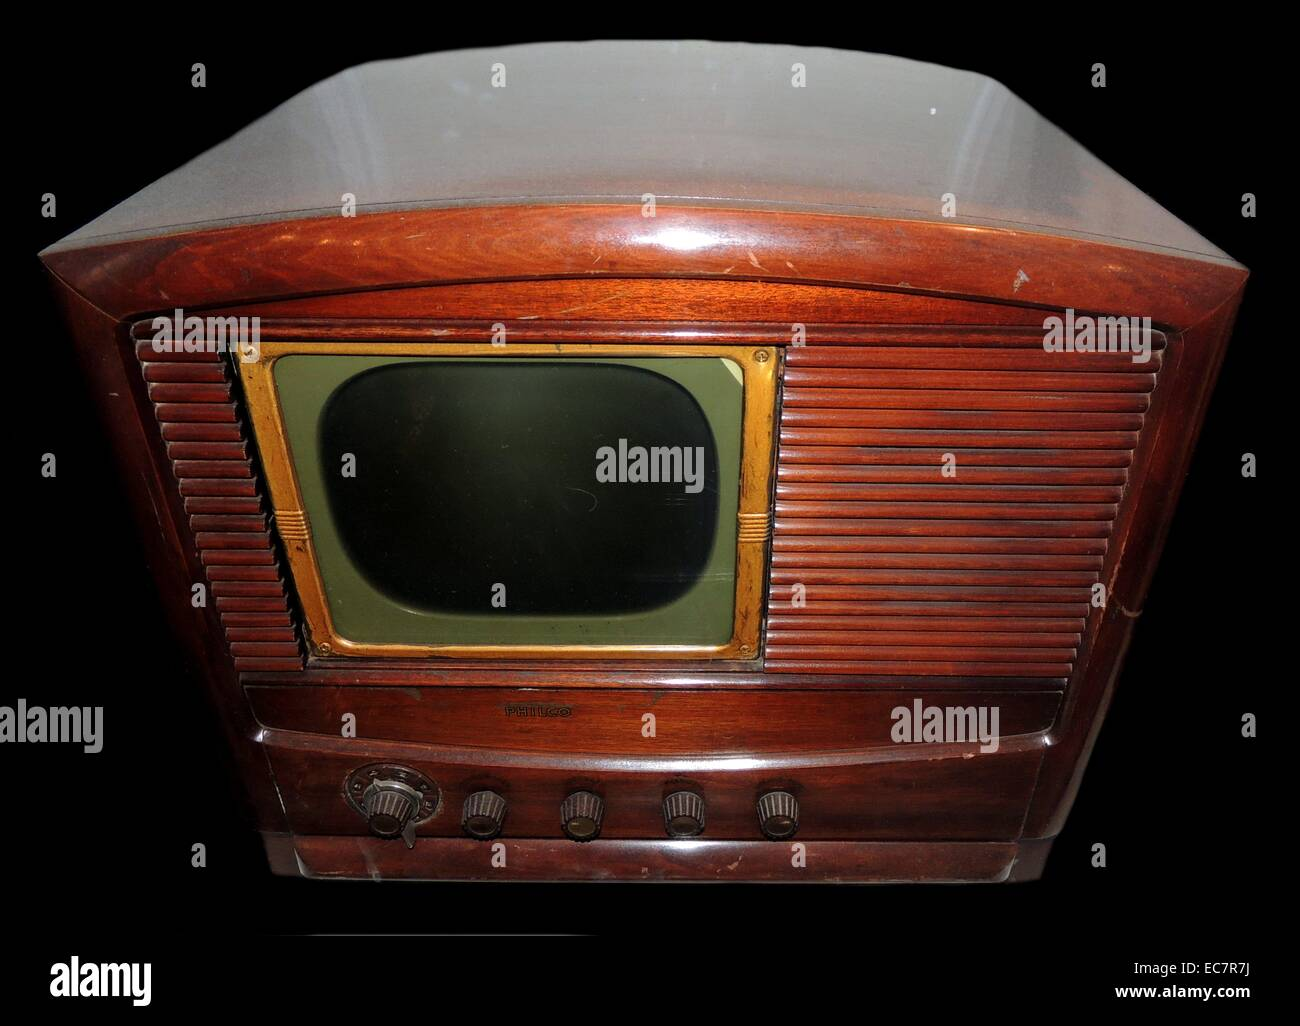 Television Manufactured by Philco - Stock Image